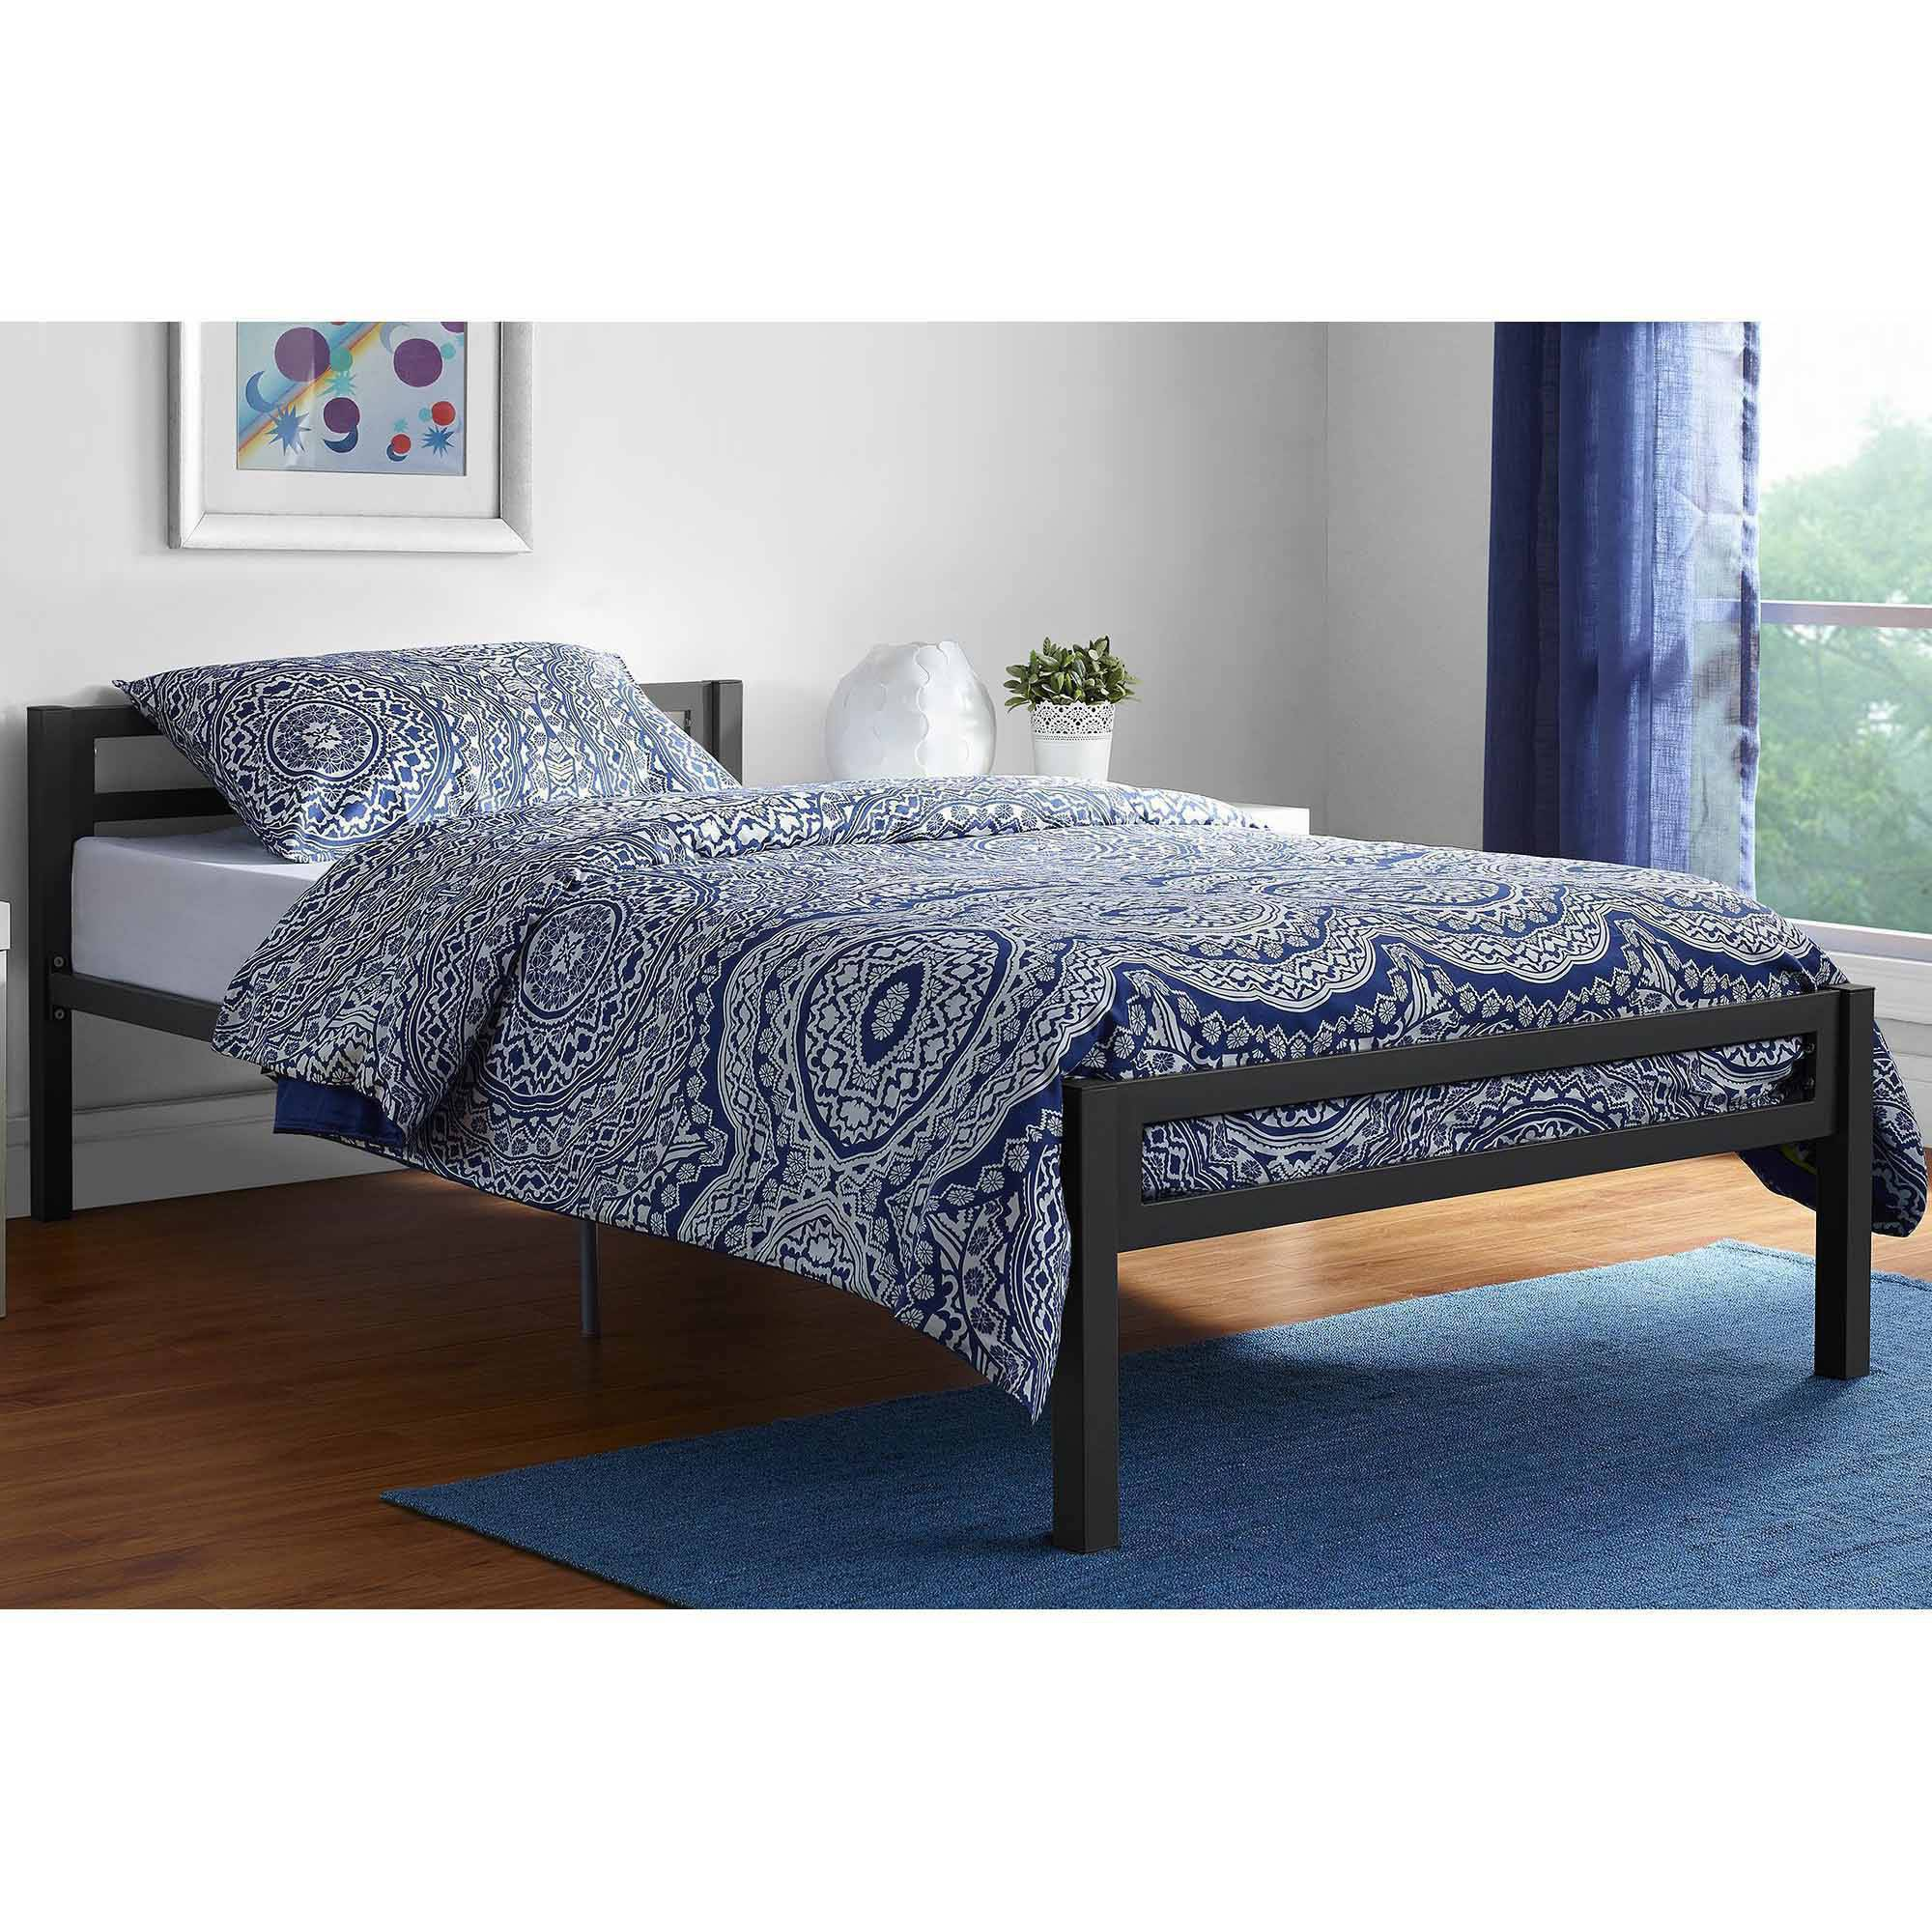 Mainstays Premium Metal Twin Bed, Multiple Colors